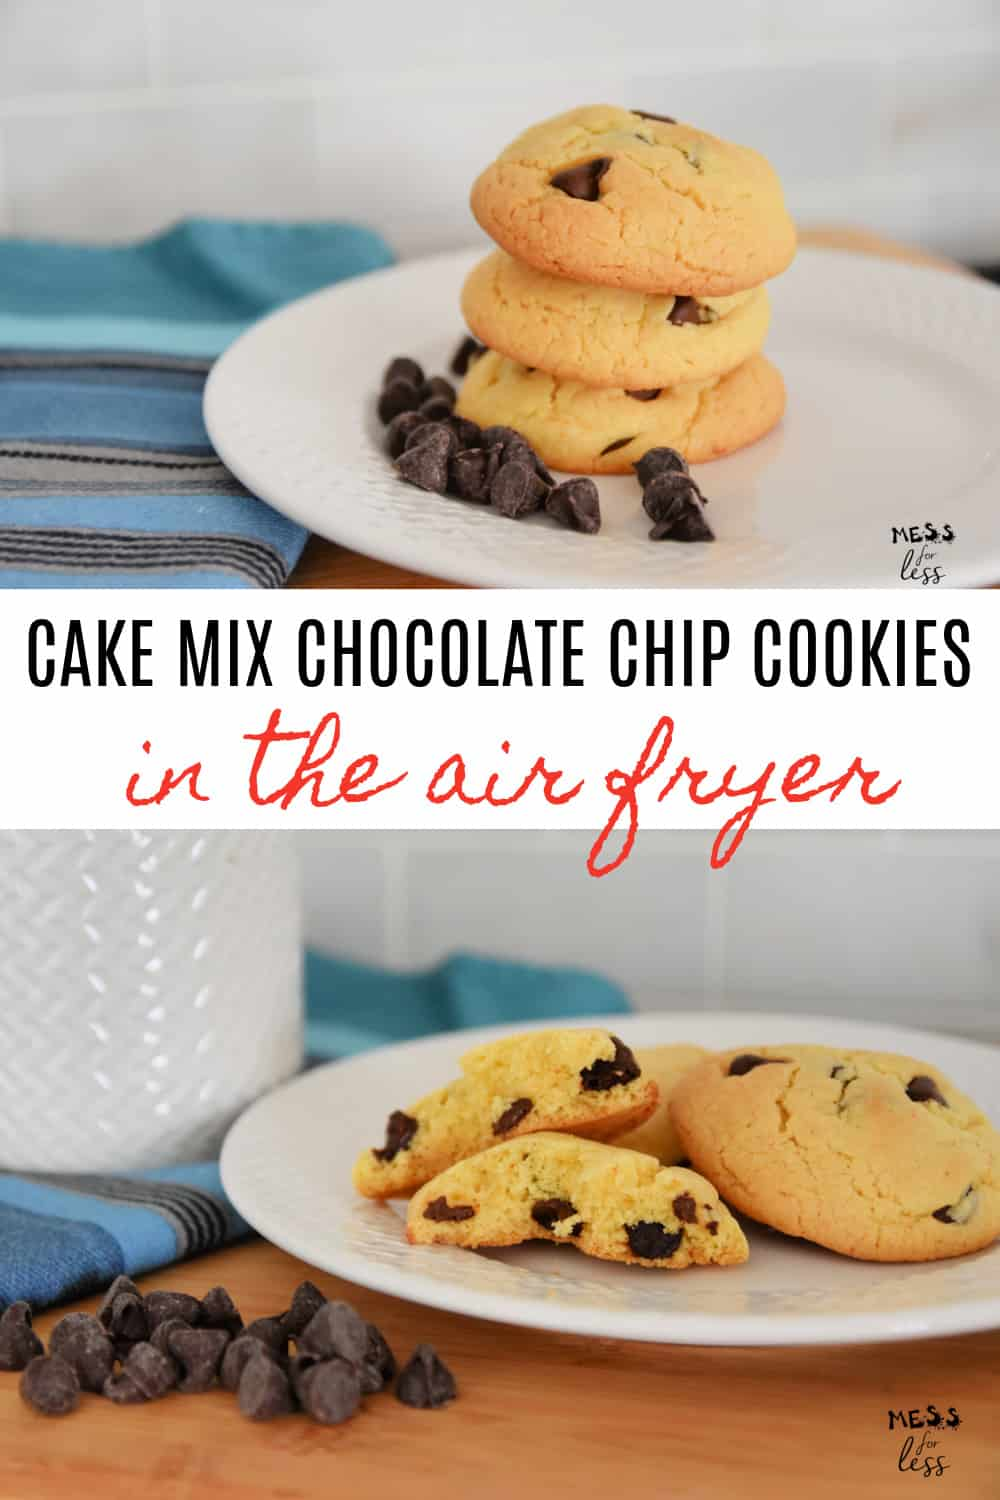 Cake Mix Chocolate Chip Cookies in the Air Fryer